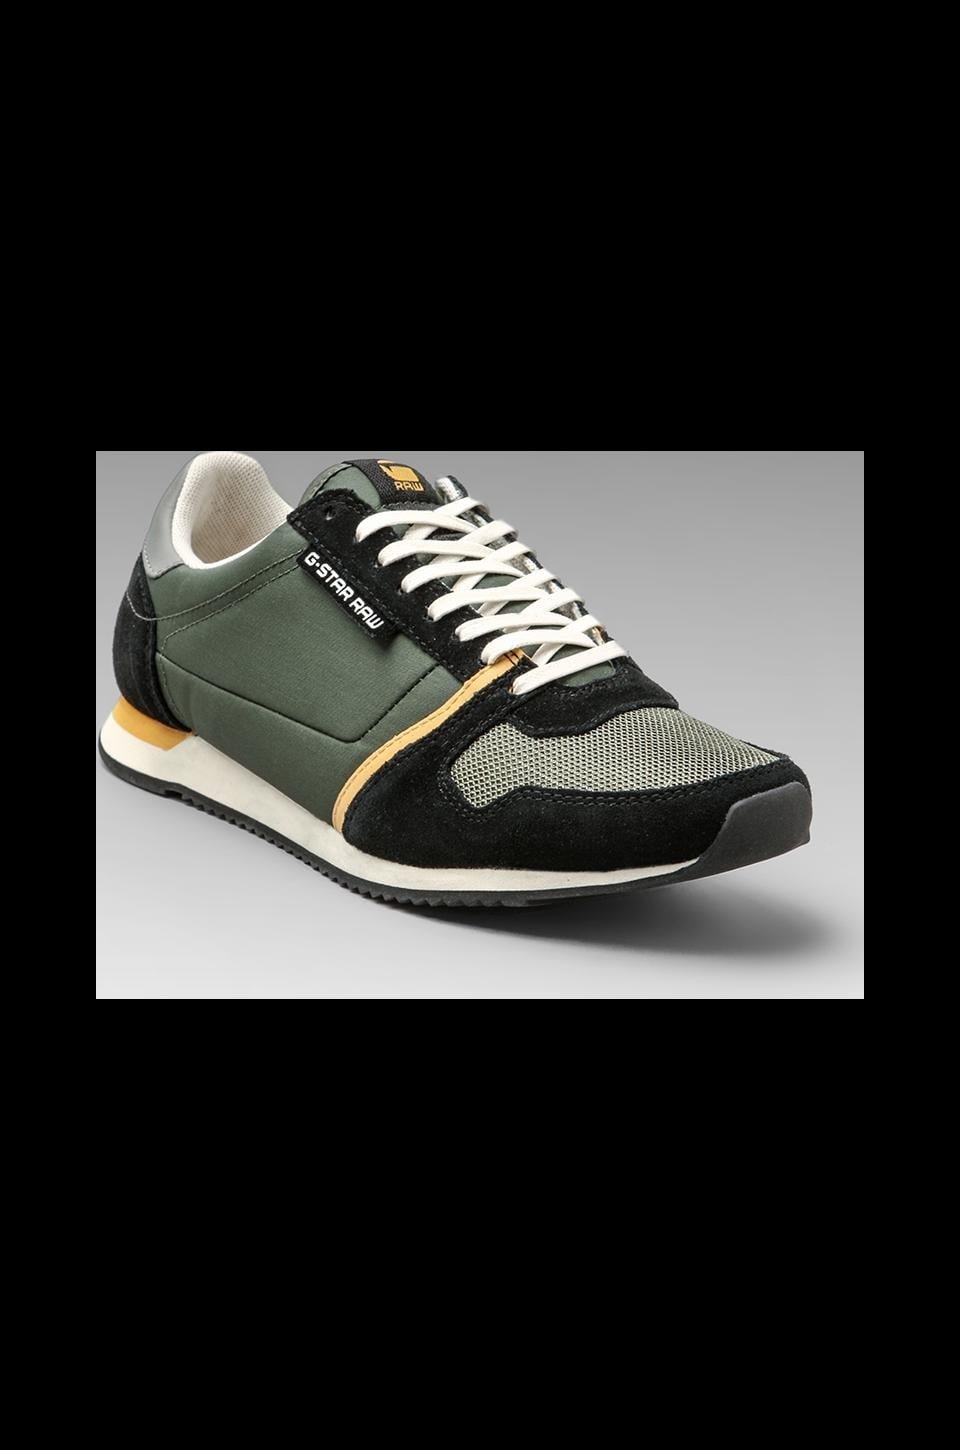 G-Star Track Futura in Sage/Black/Sage/Neutral Grey